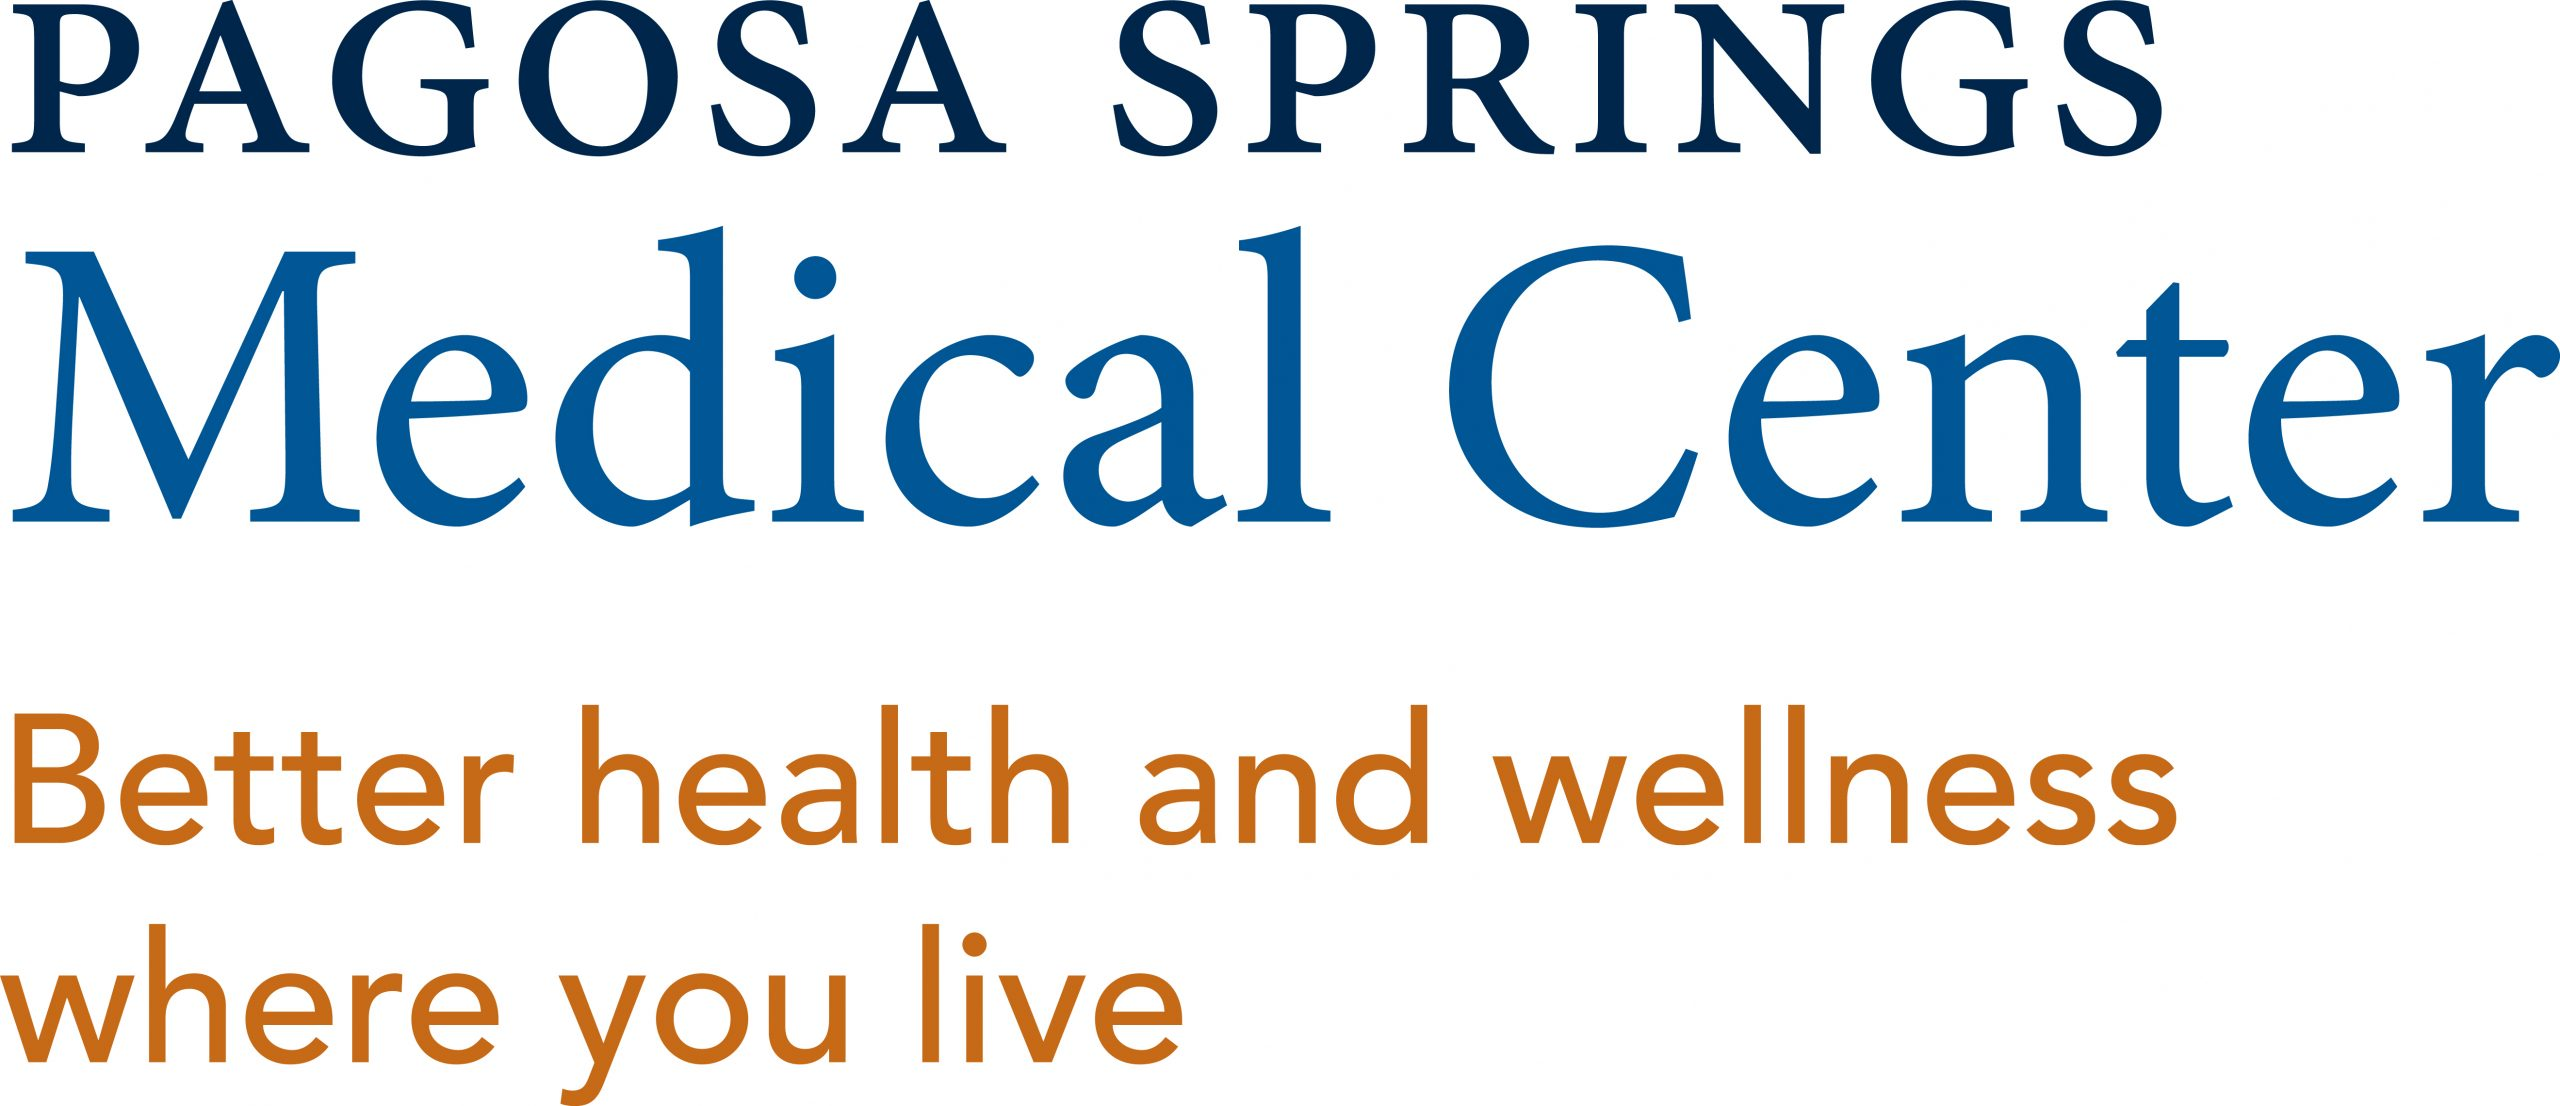 Pagosa_Springs_Medical_Center_Logo_portfolio